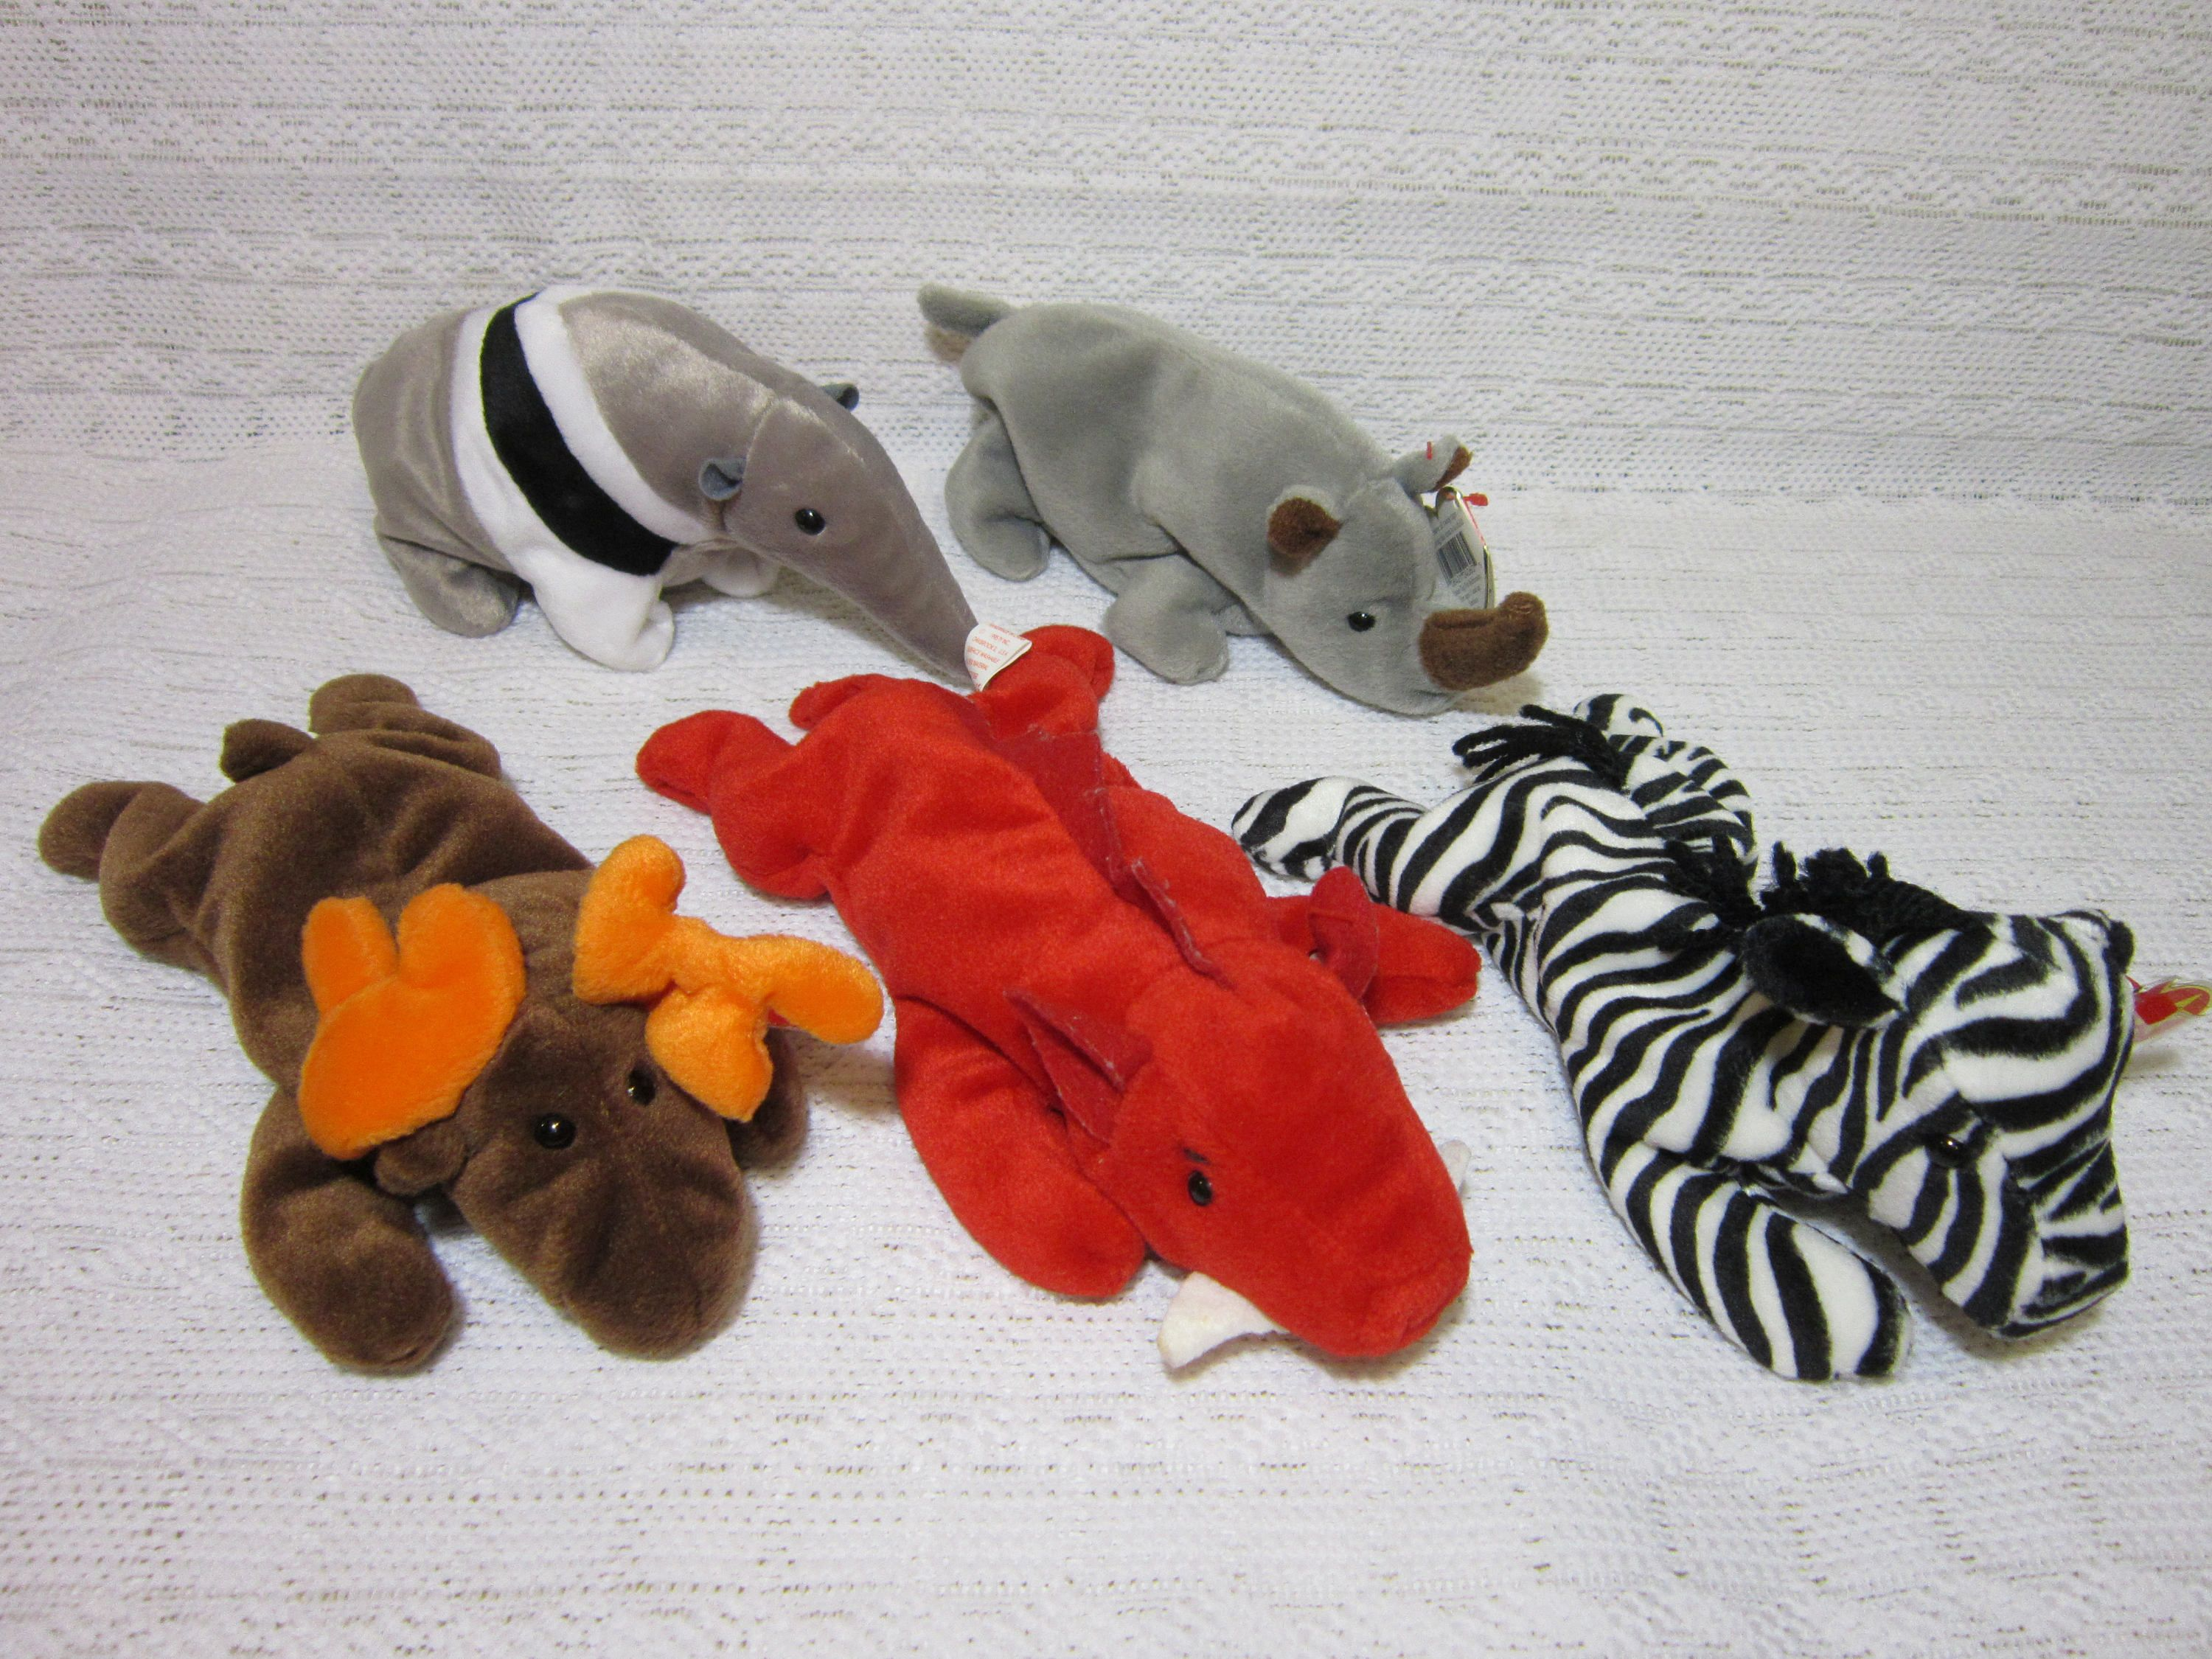 d101173fd53ff3 Collectible Ty Beanie Babies - Chocolate The Moose, Grunt the Razorback,  Ziggy The Zebra, Spike The Rhinoceros and Ants The Anteater by  RainbowConnection15 ...